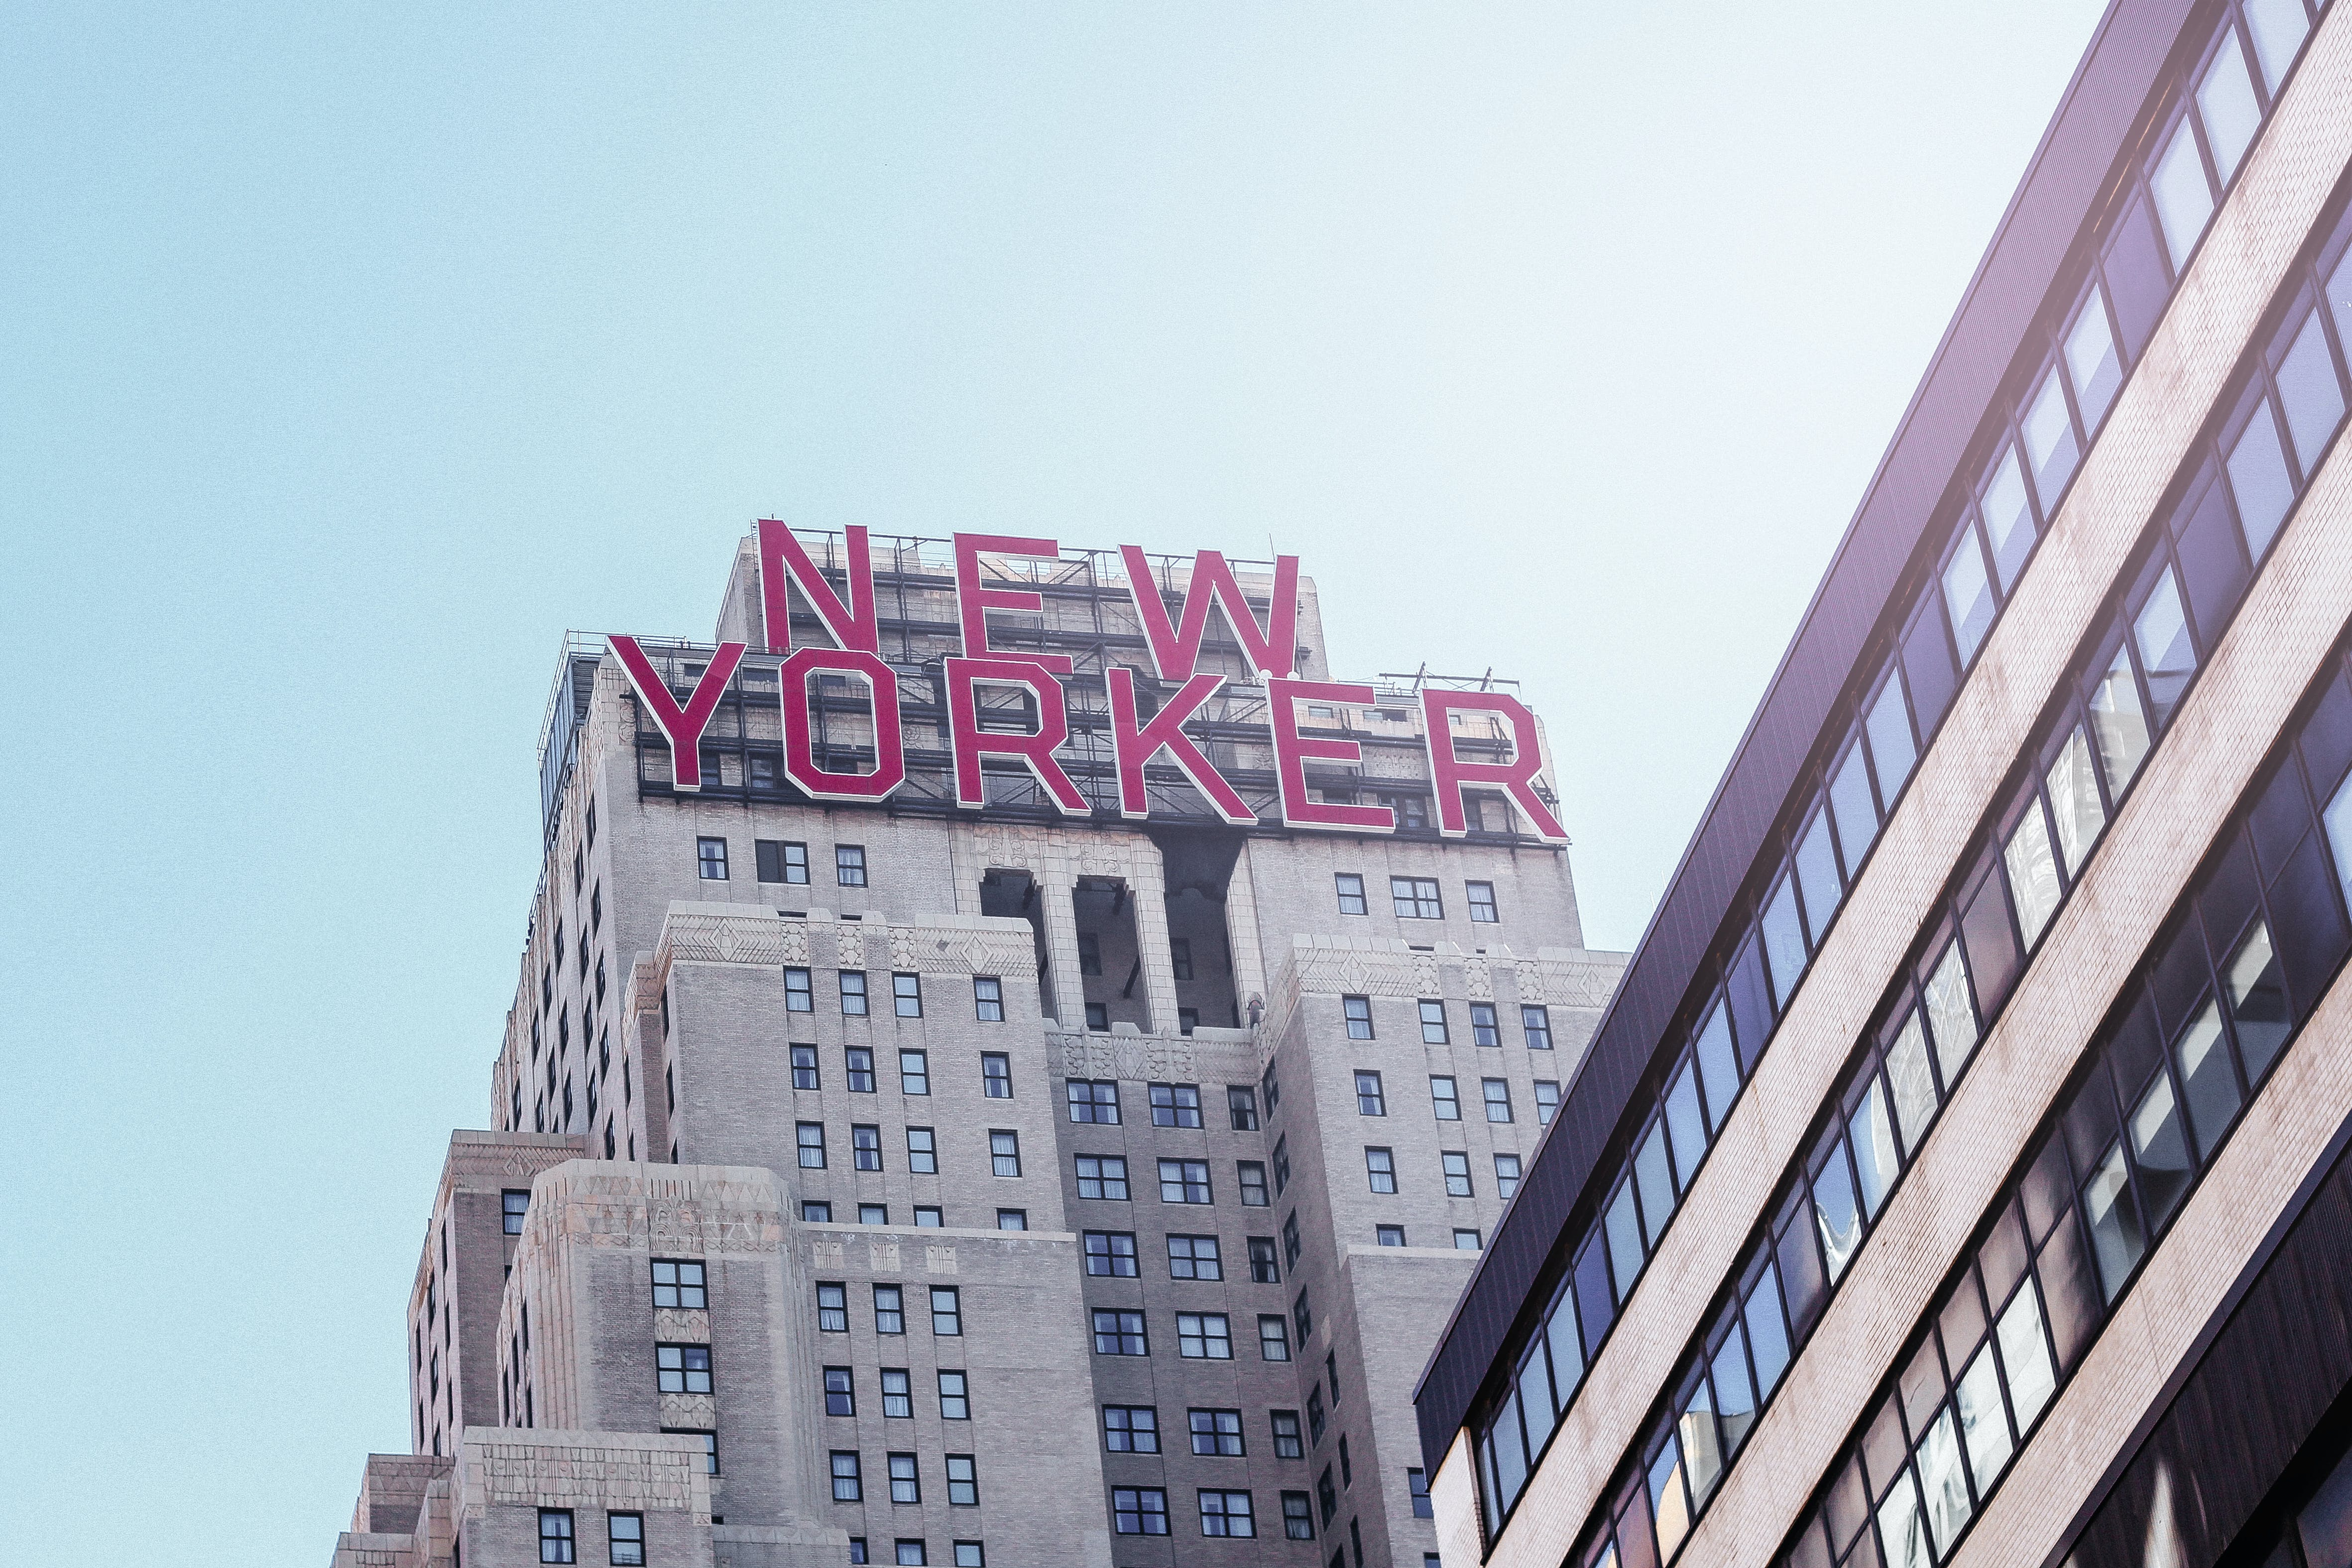 New Yorker Signage on Building